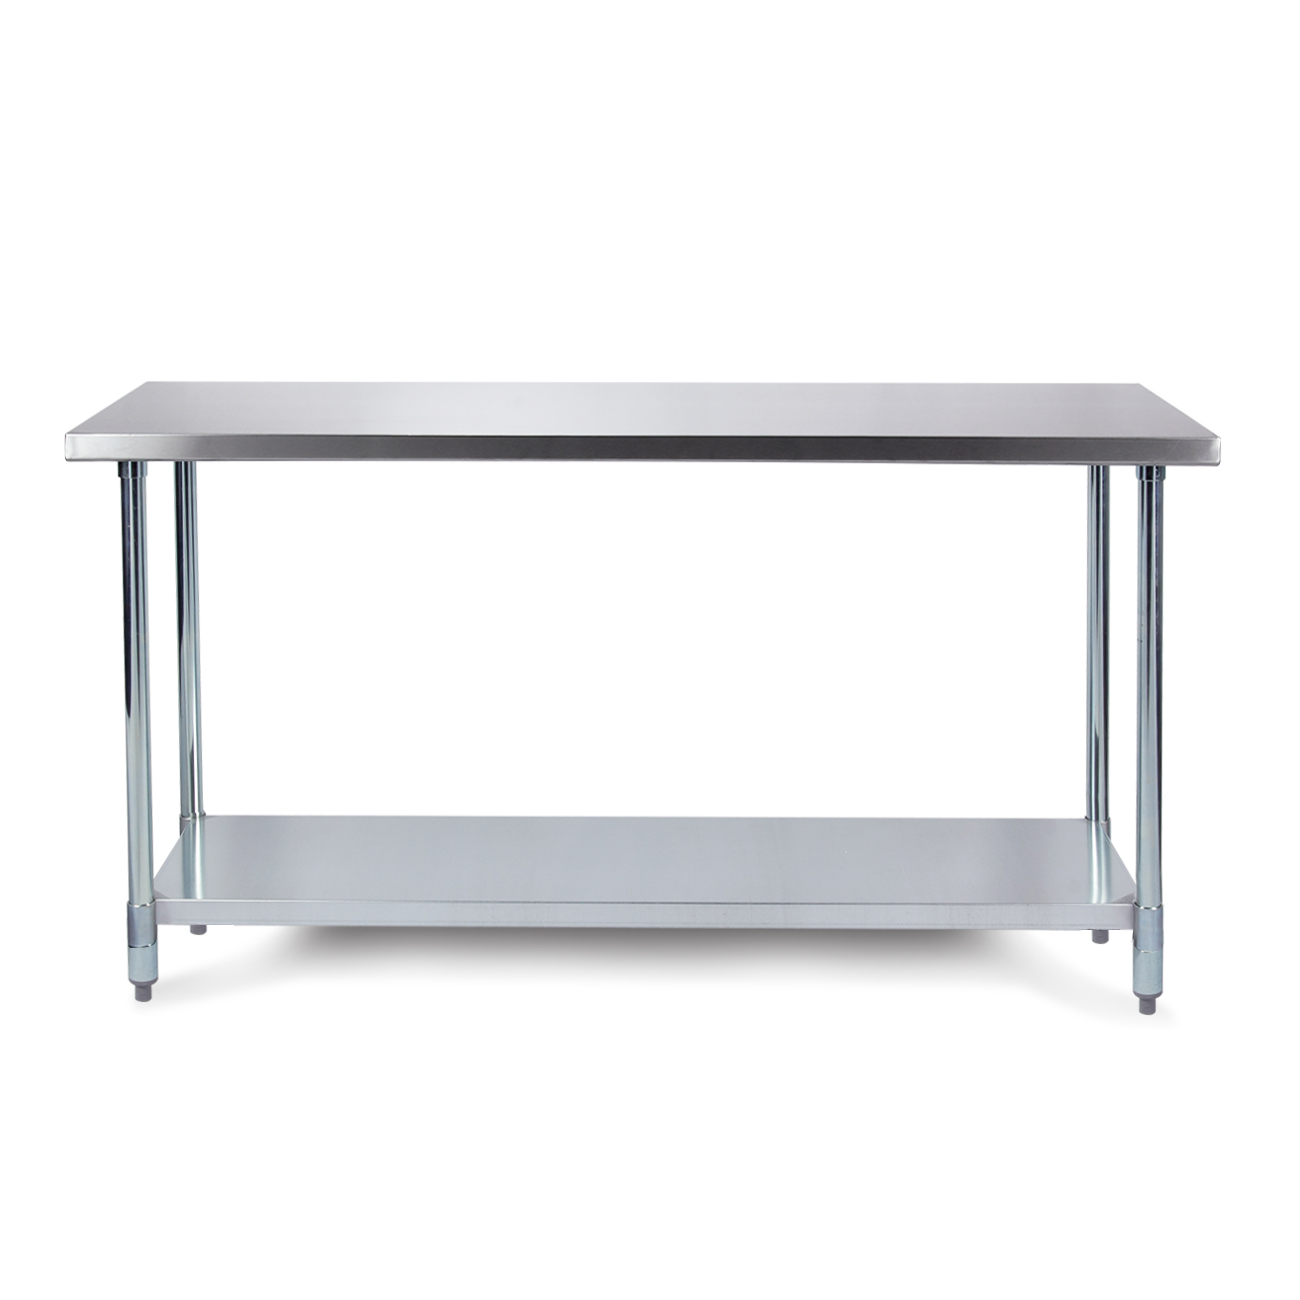 Stainless Steel 36 X 24 Indoor Outdoor Prep Table W Undershelf